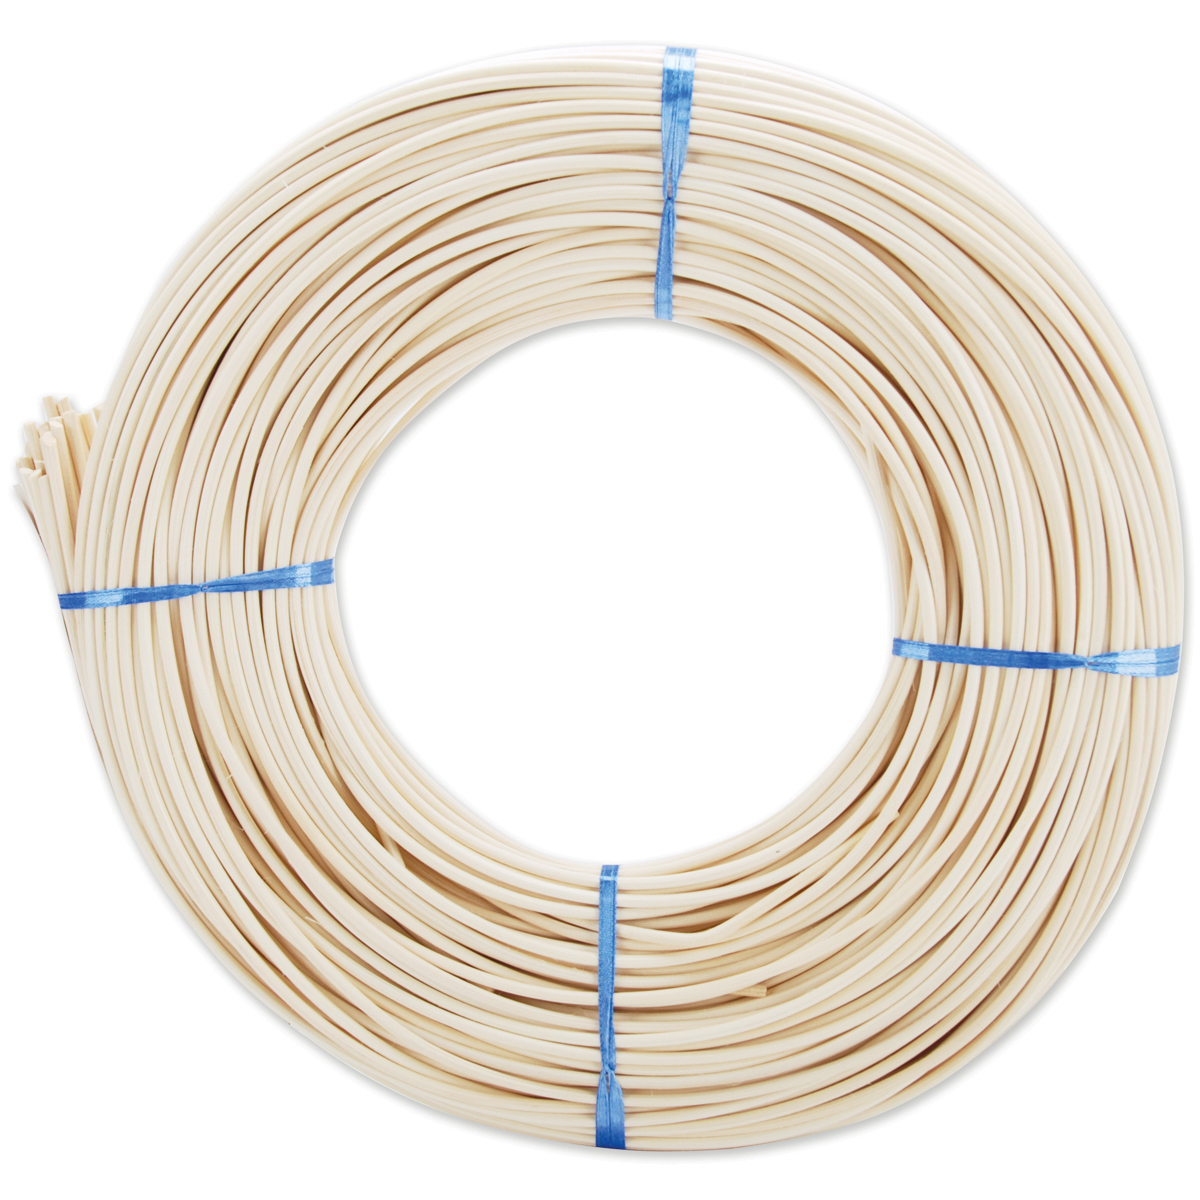 Commonwealth Basket Round Reed #3 2.25 mm 1 lb Coil-750 feet Approximately 750